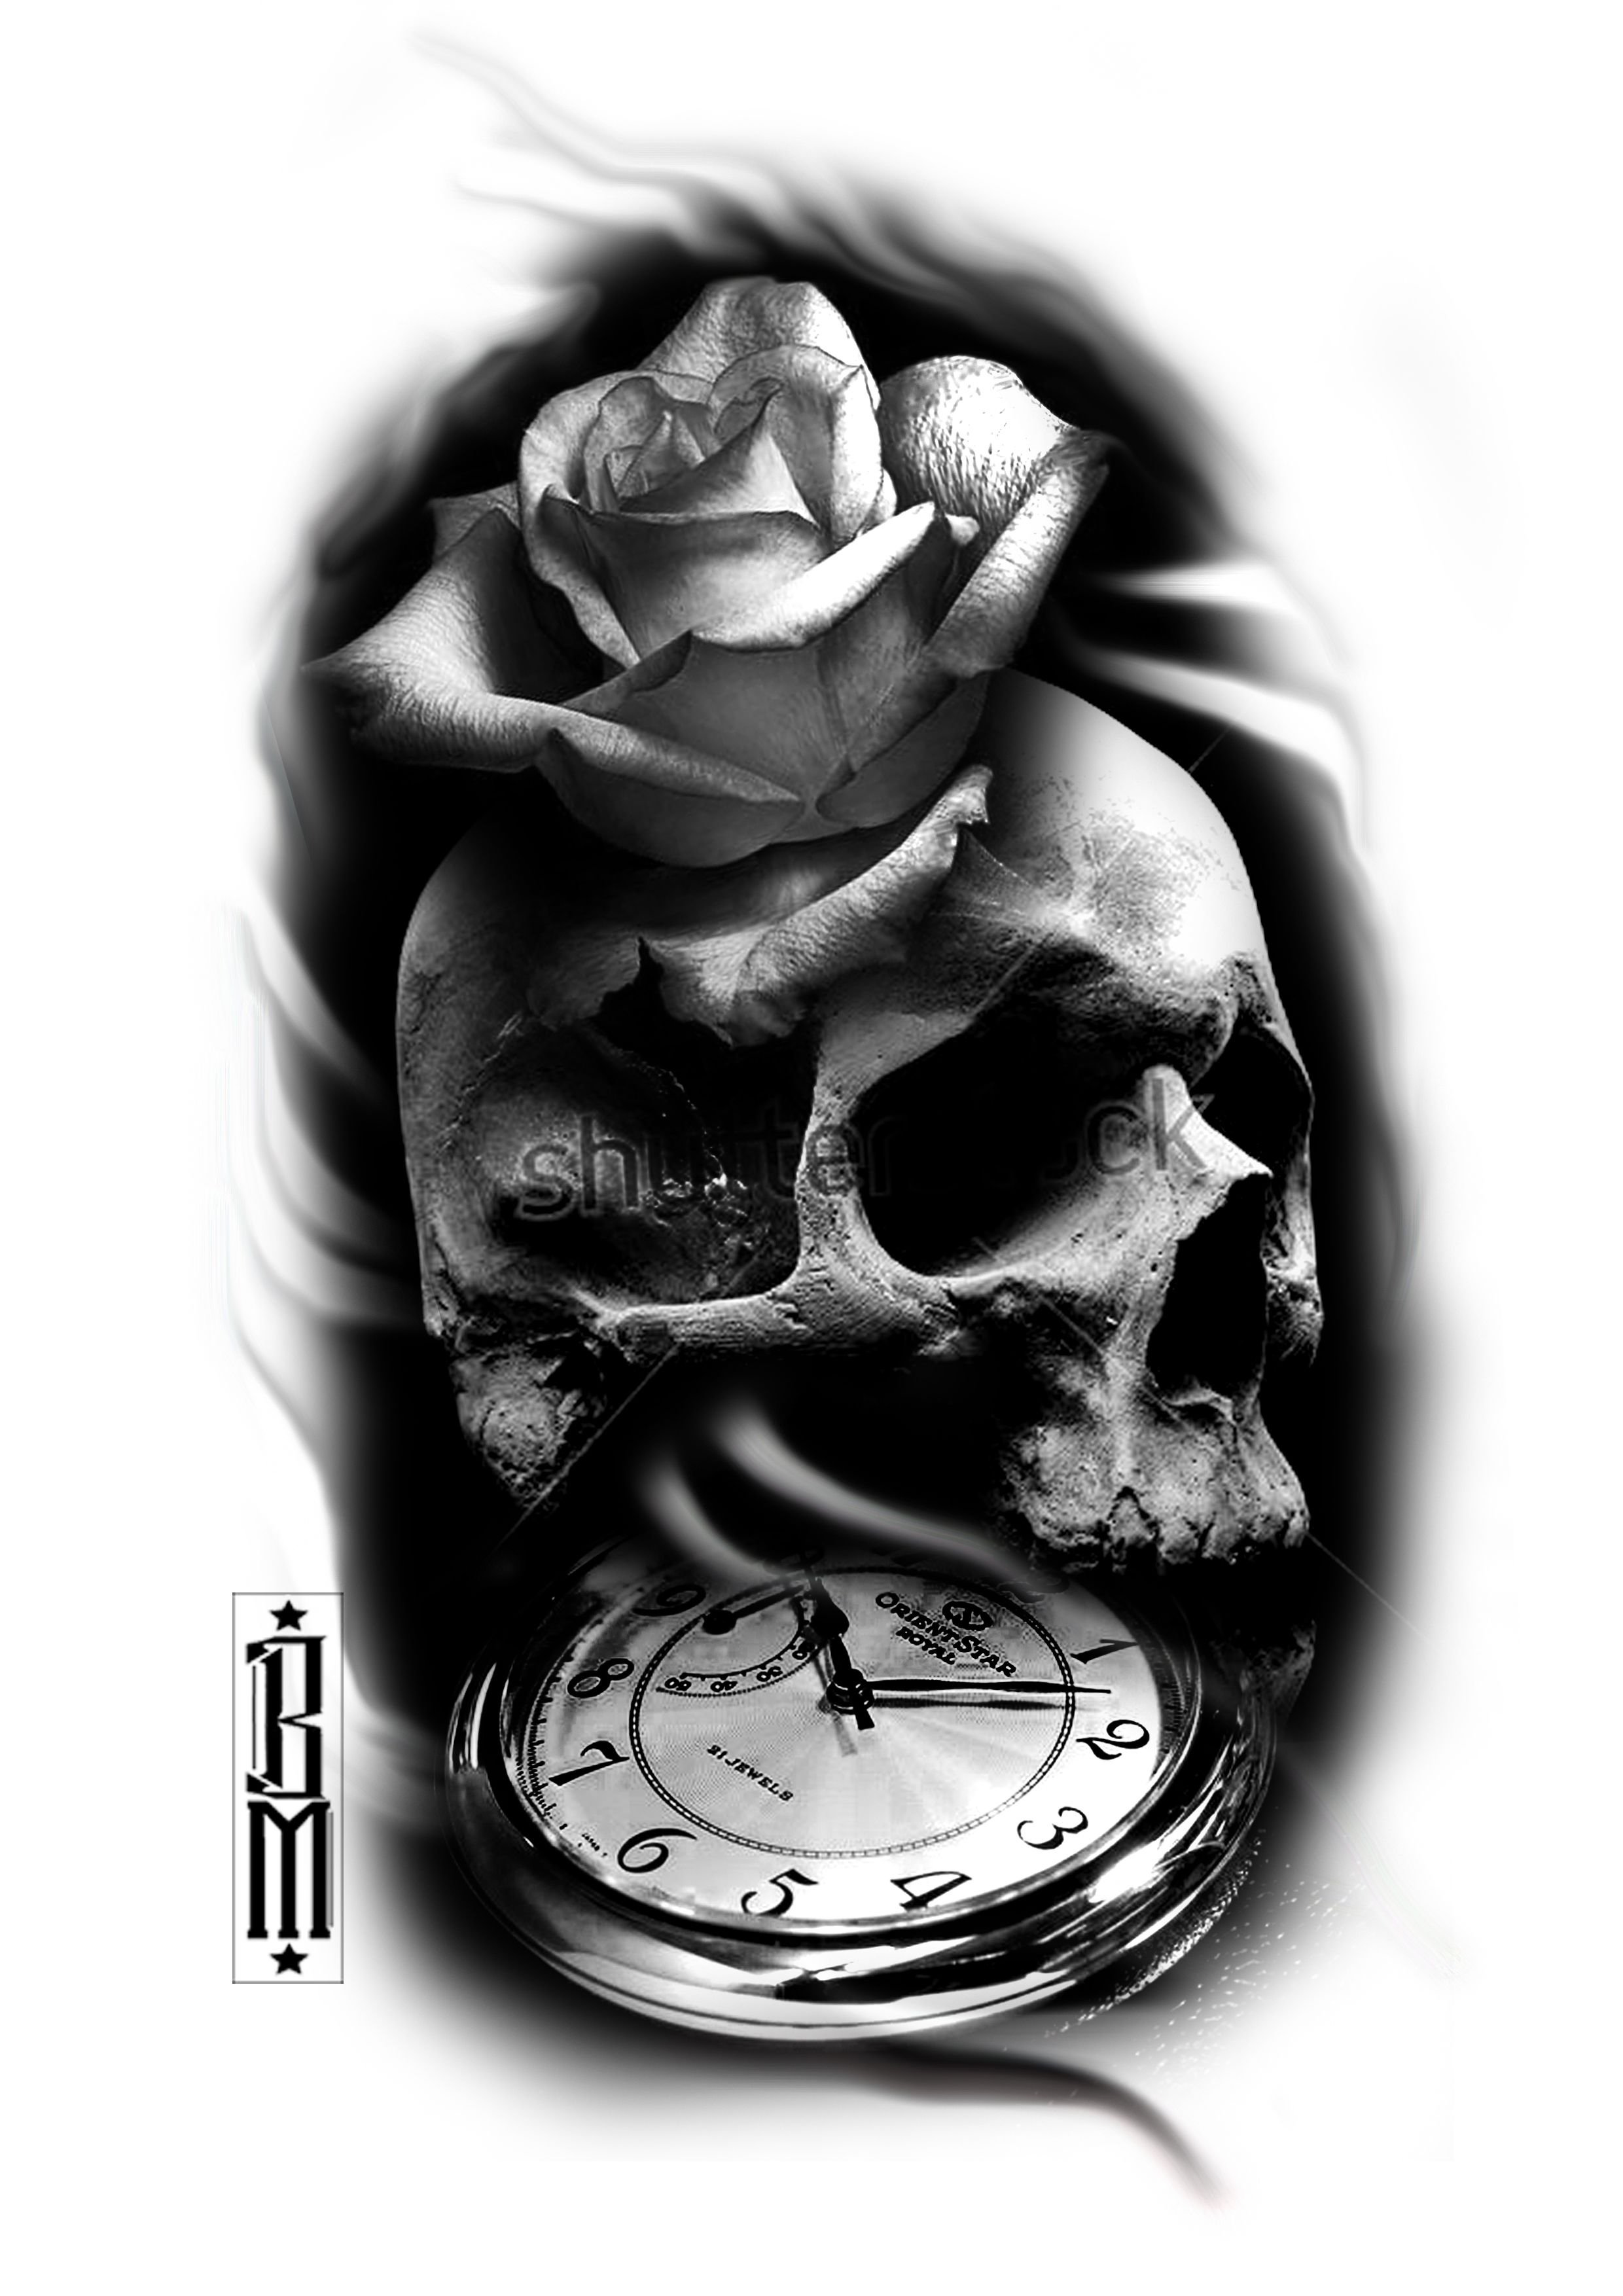 10 Most Recommended Black And Grey Tattoo Ideas skull rose clock black and grey tattoo sleeve ideas designs design 2020